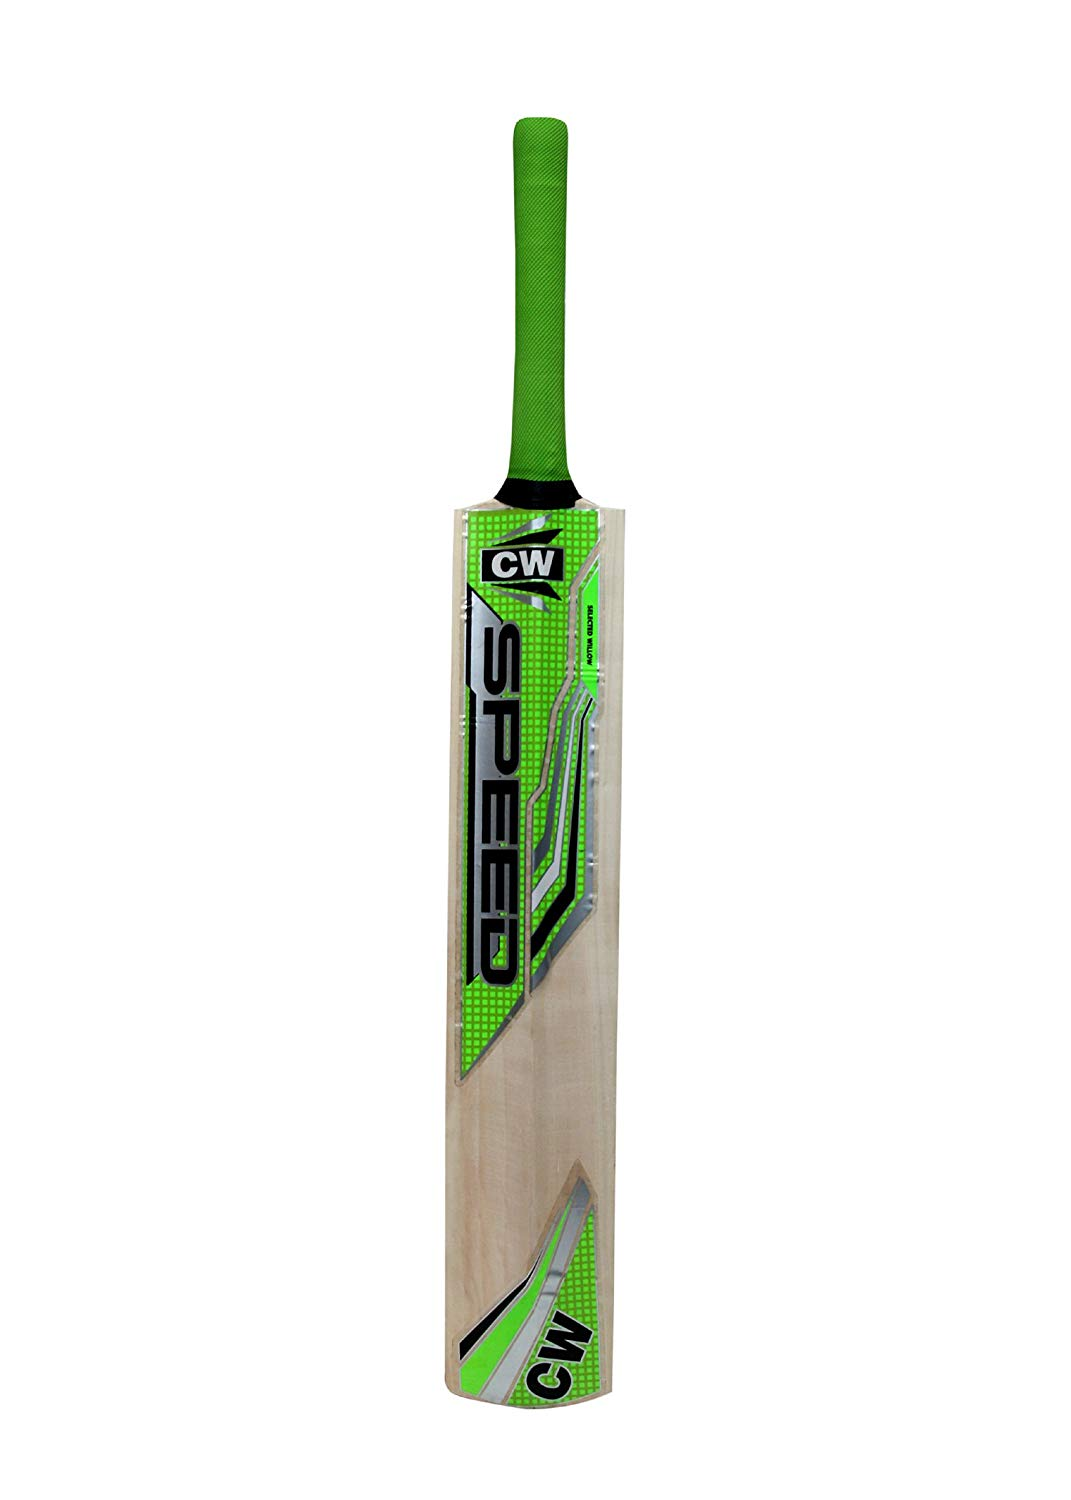 C&W Cricket World Stylish Men Sports SPEED Original Tennis Kashmir Willow Full Short Handle Thick Edge Light Weight Traditionally Shaped Perfect For Tennis Play With Free Bat Cover Lowest Price_